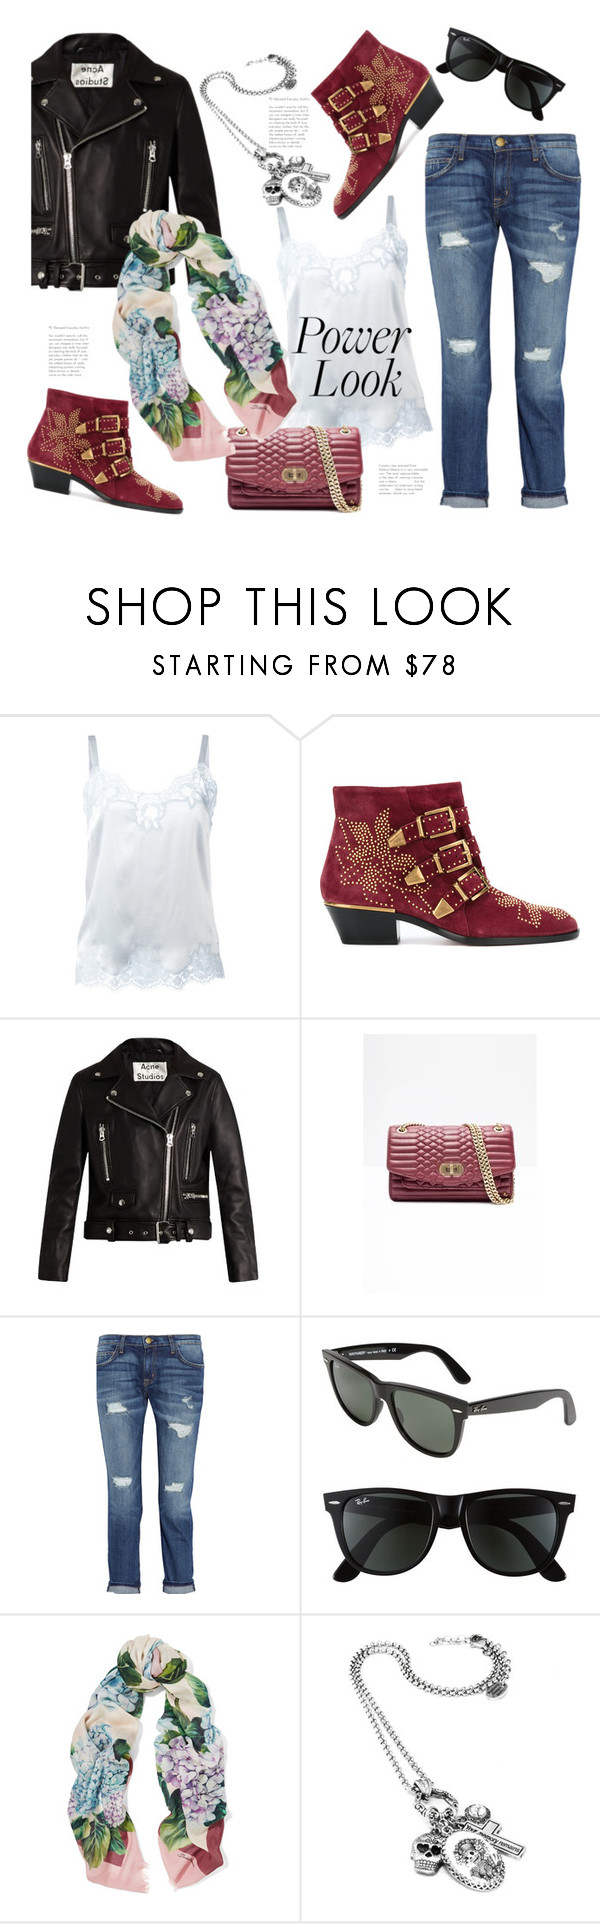 """""""Girl Power!"""" by badassbabyboomer ❤ liked on Polyvore featuring Dolce&Gabbana, Chloé, Acne Studios, Current/Elliott, Ray-Ban and MyPowerLook"""